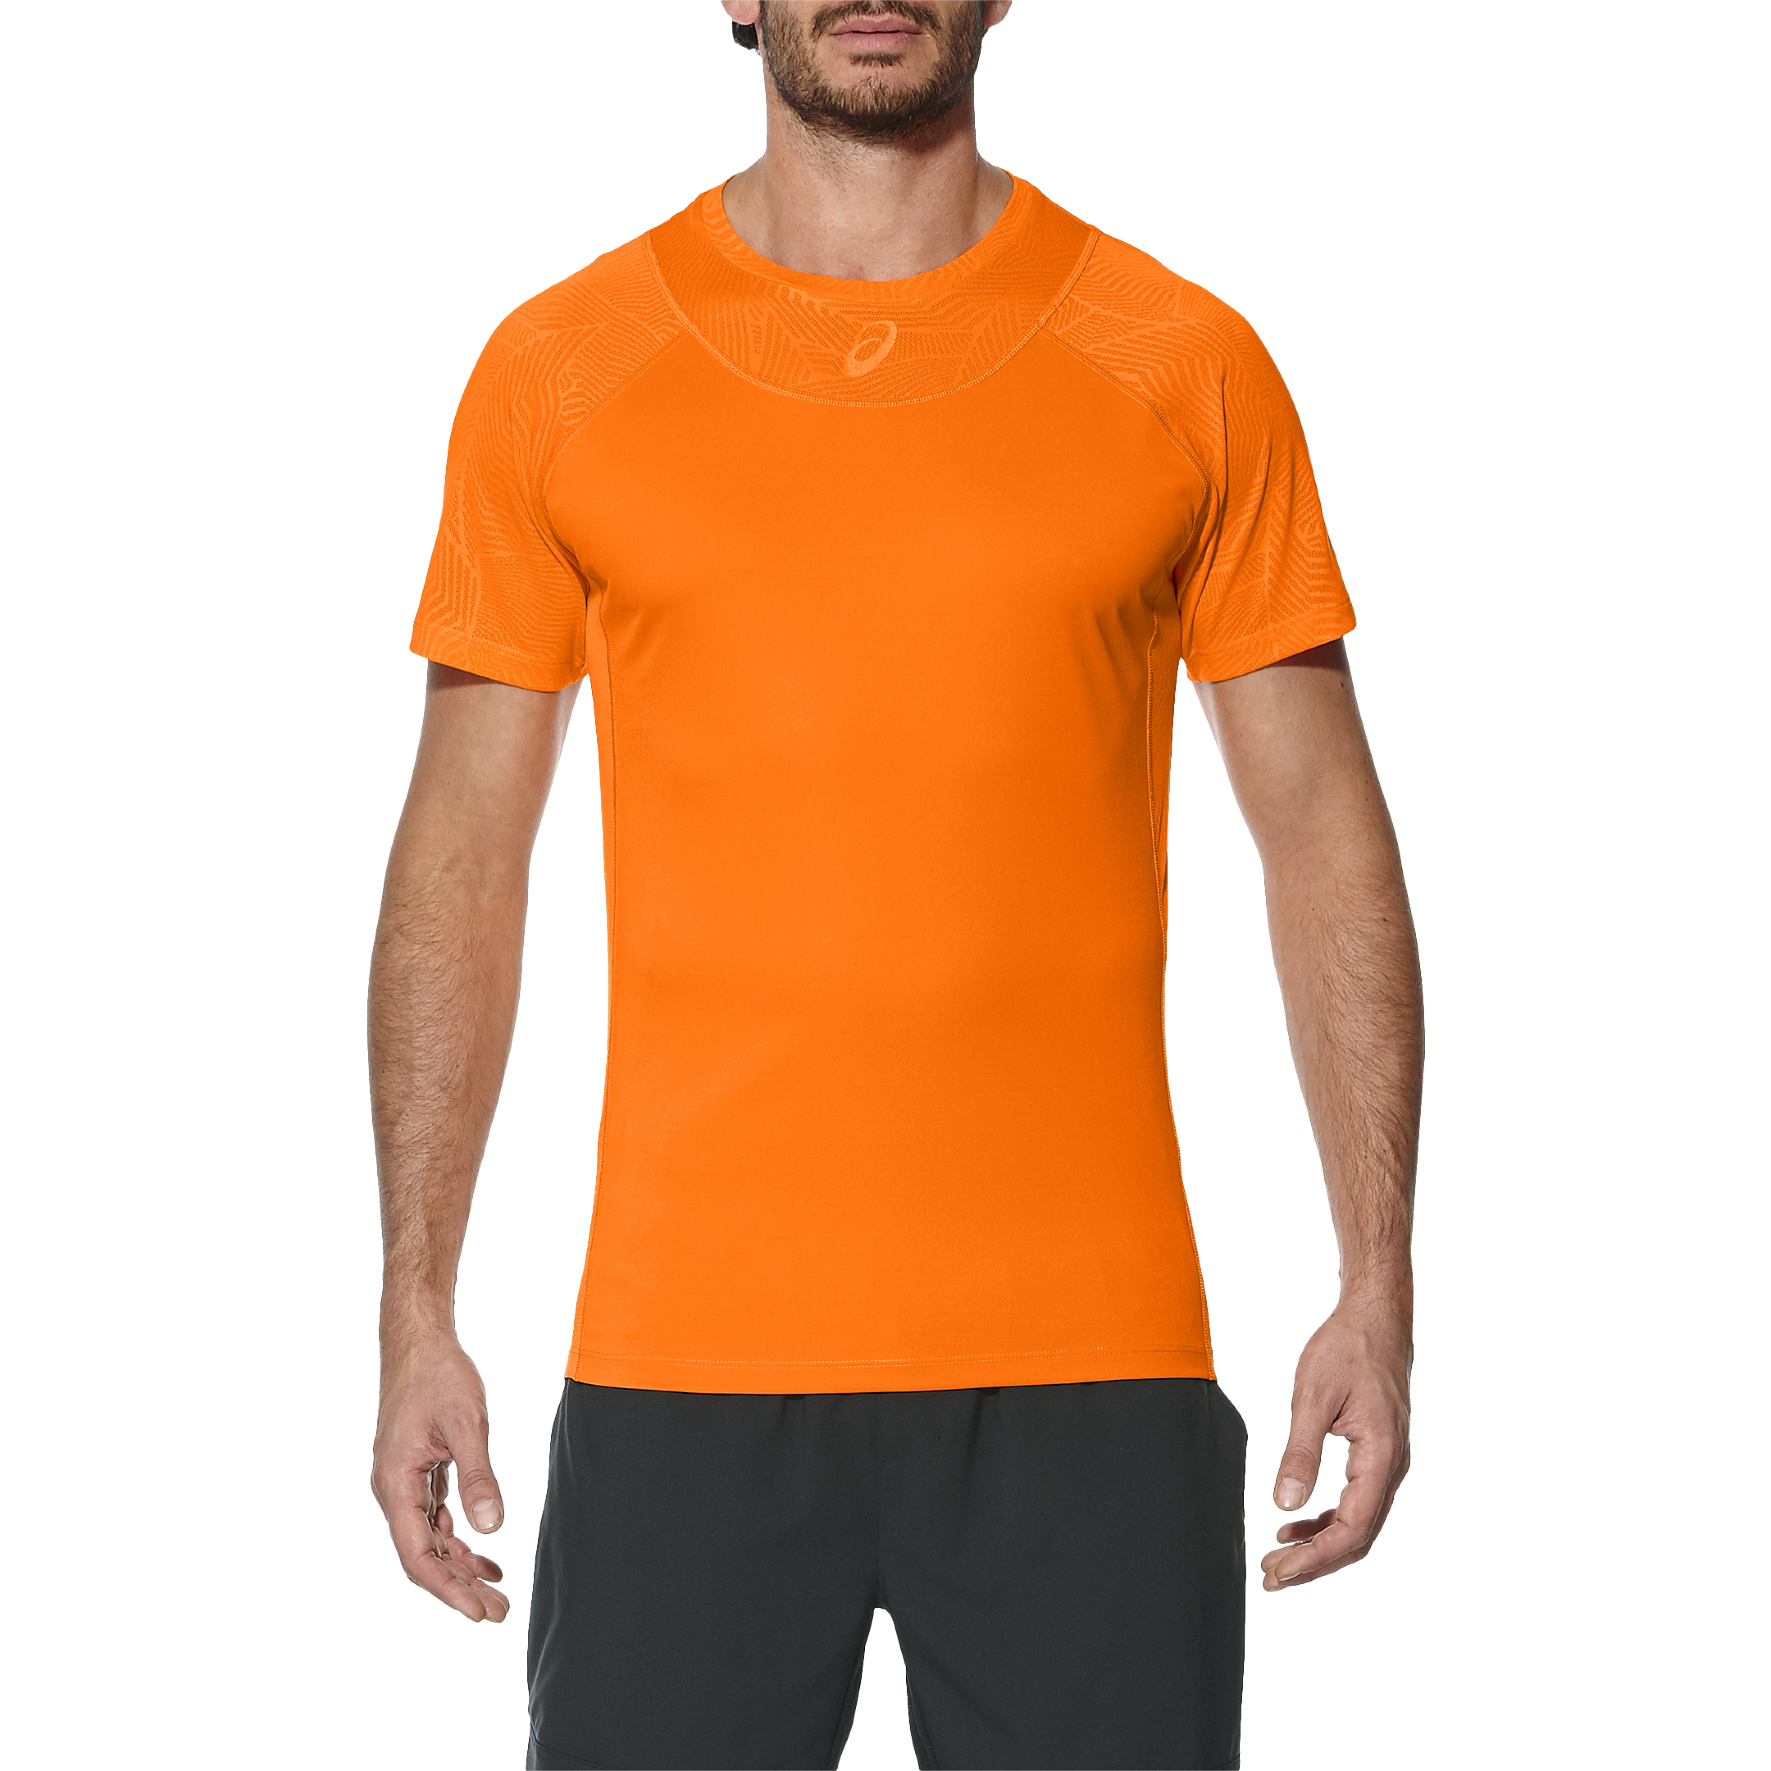 Asics Athlete Cooling Mens Tennis T-Shirt - Orange, S